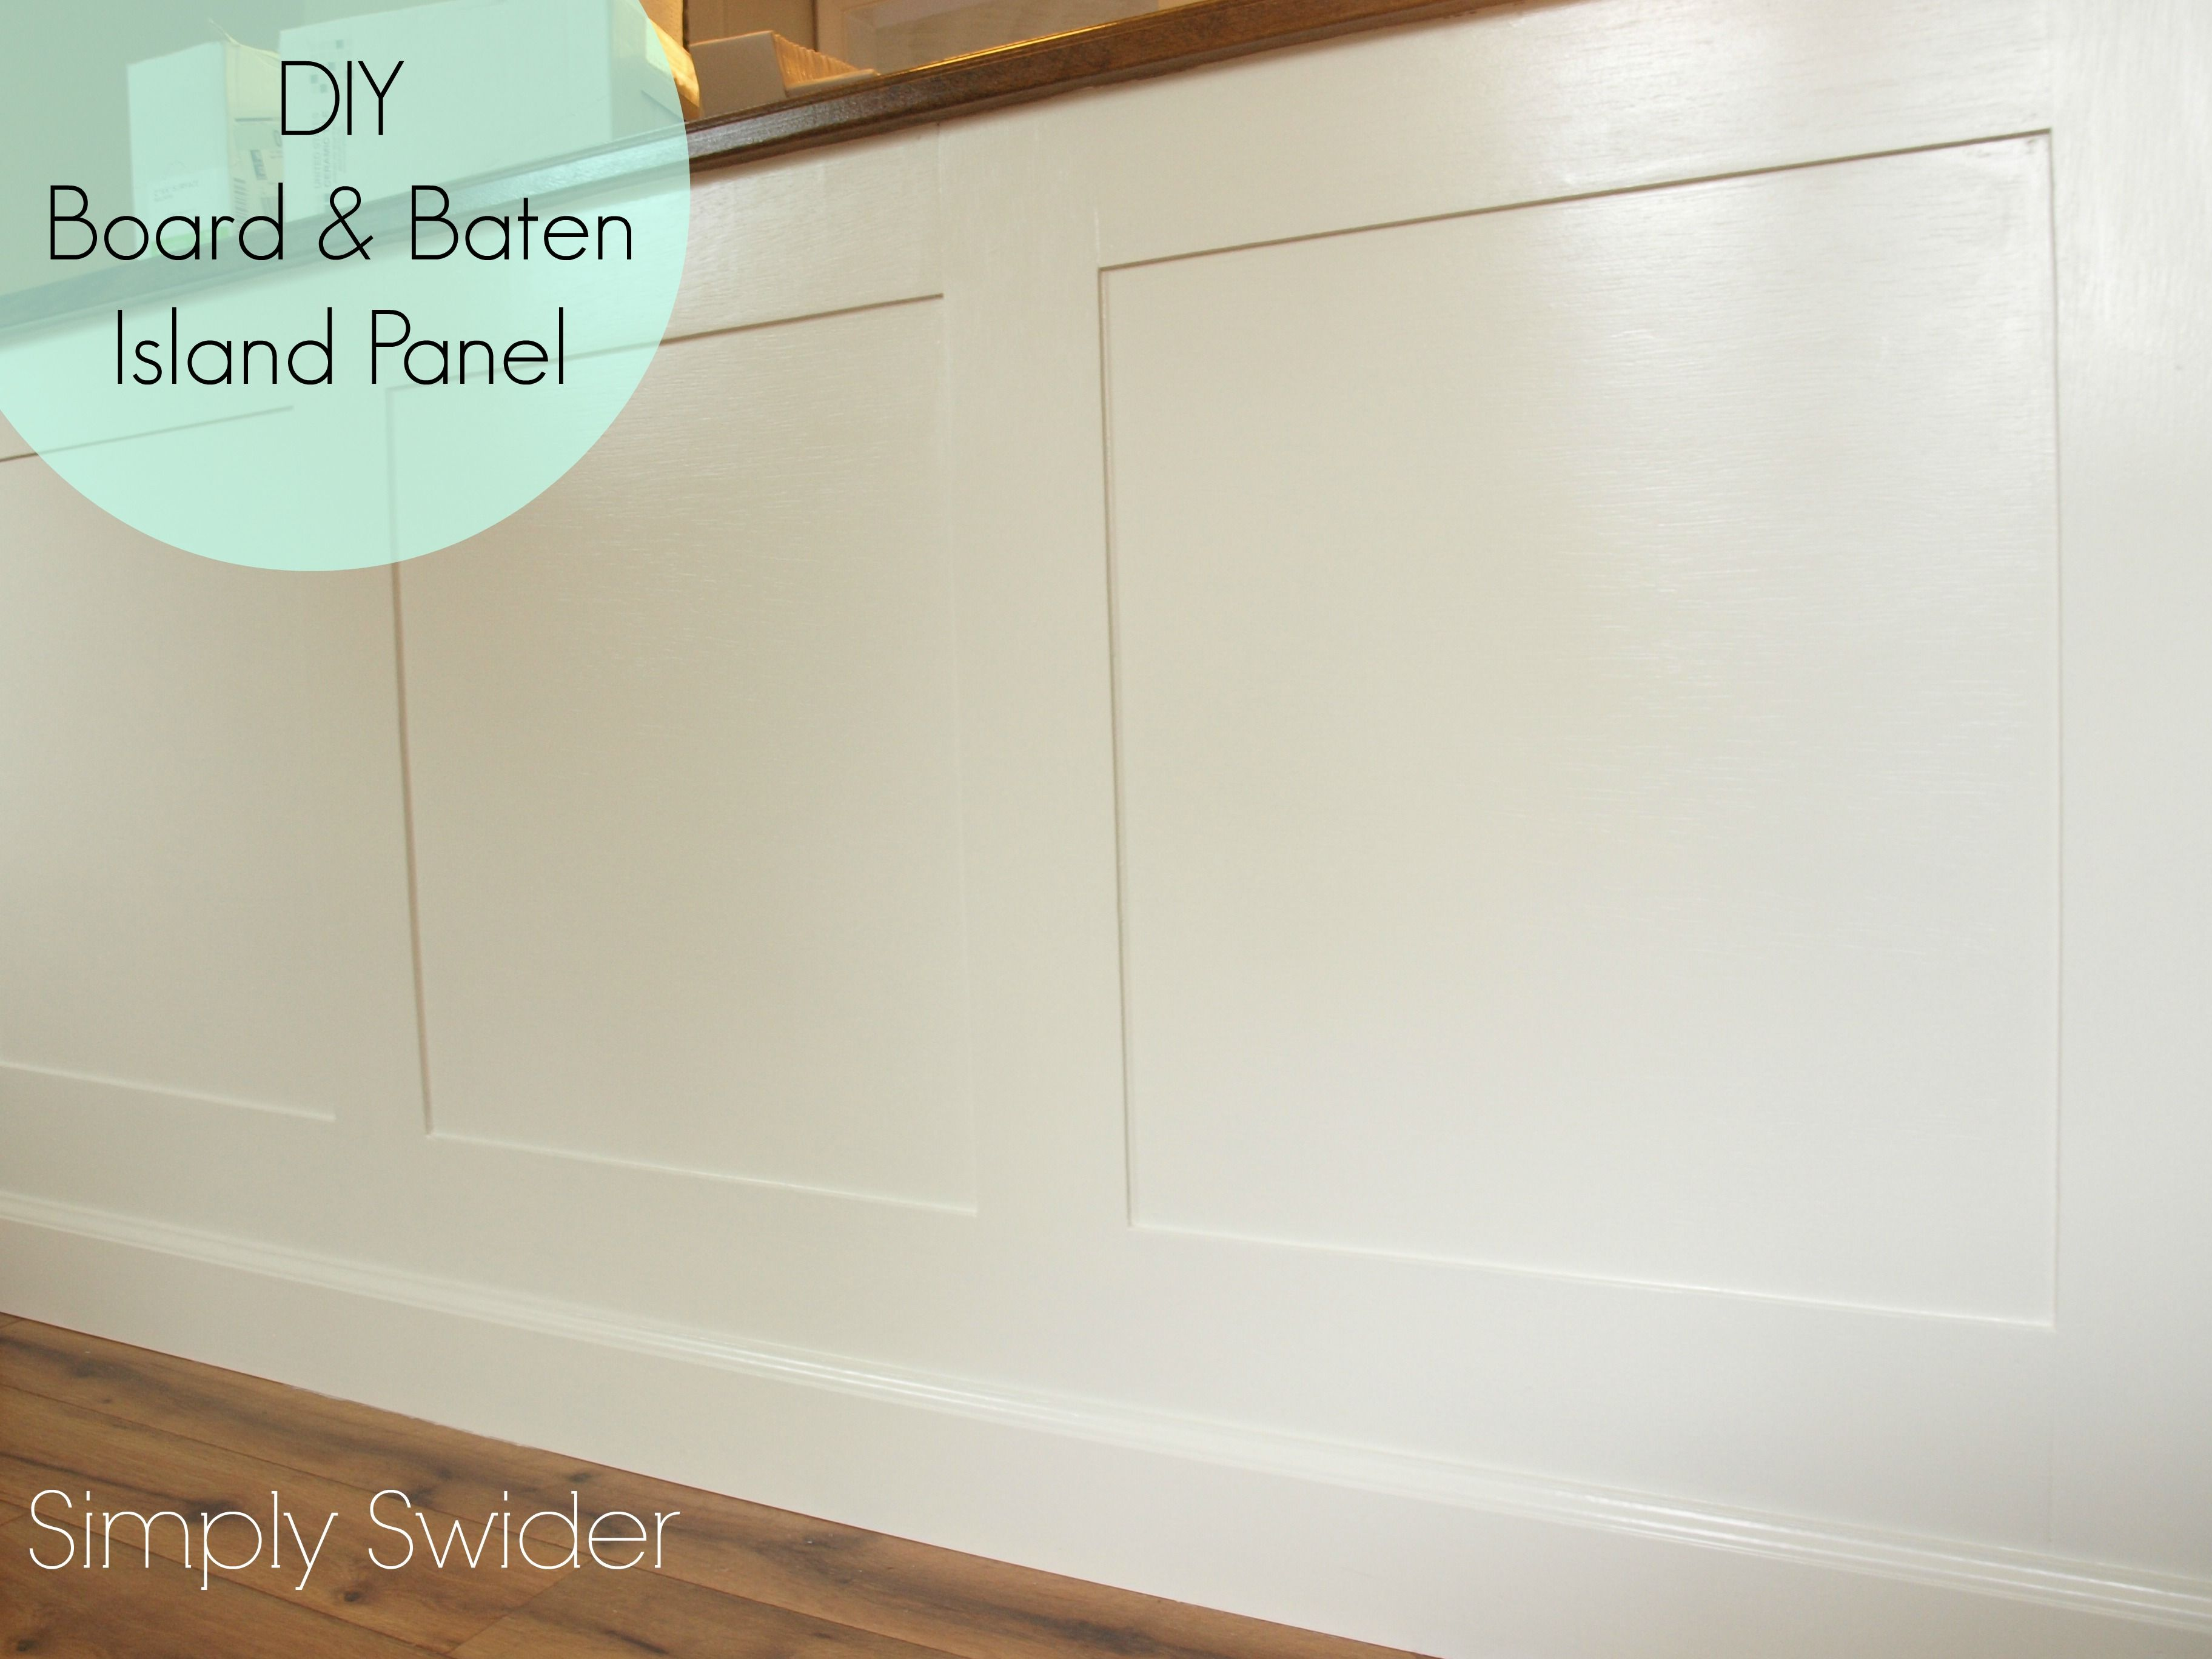 Diy Soffits With Crown Molding And Board And Batten Cover Panels Simply Swider Diy Kitchen Remodel Kitchen Cabinet Remodel Diy House Renovations